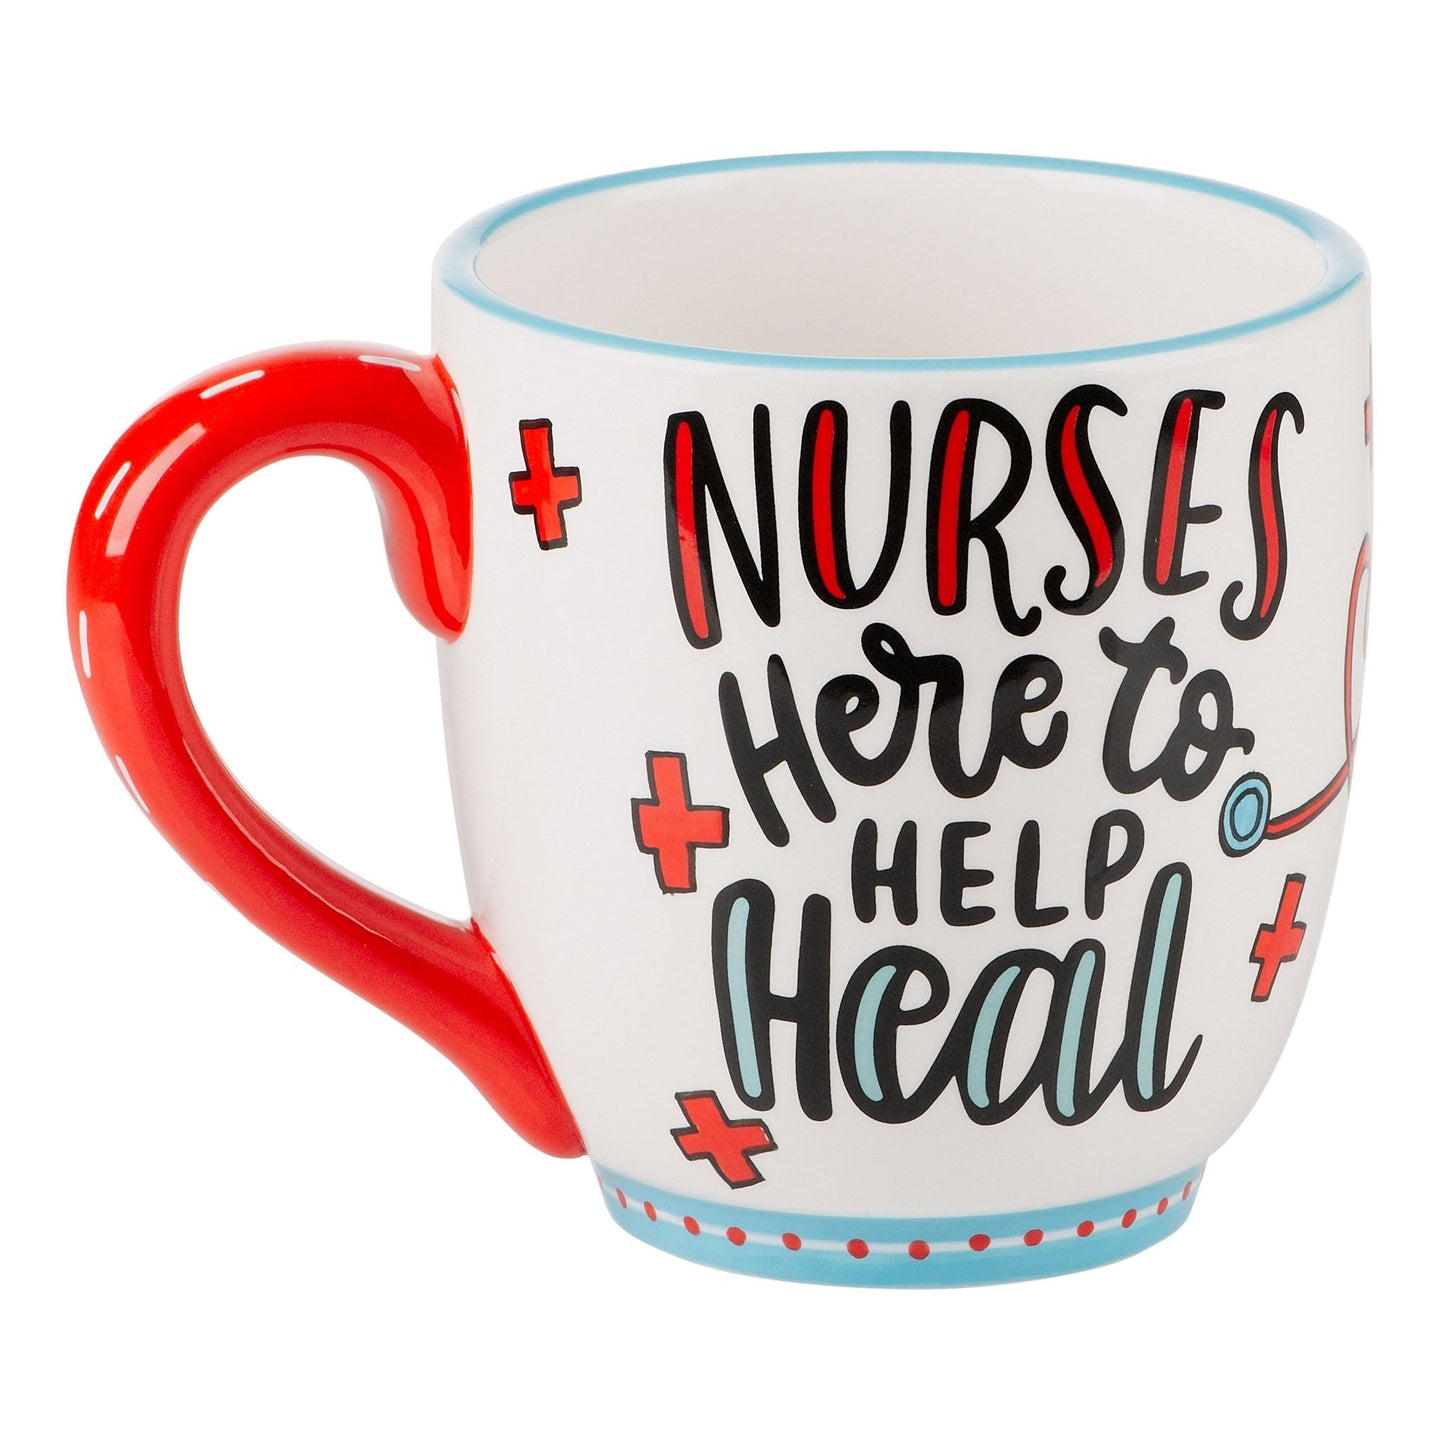 Nurses Here to Heal Mug